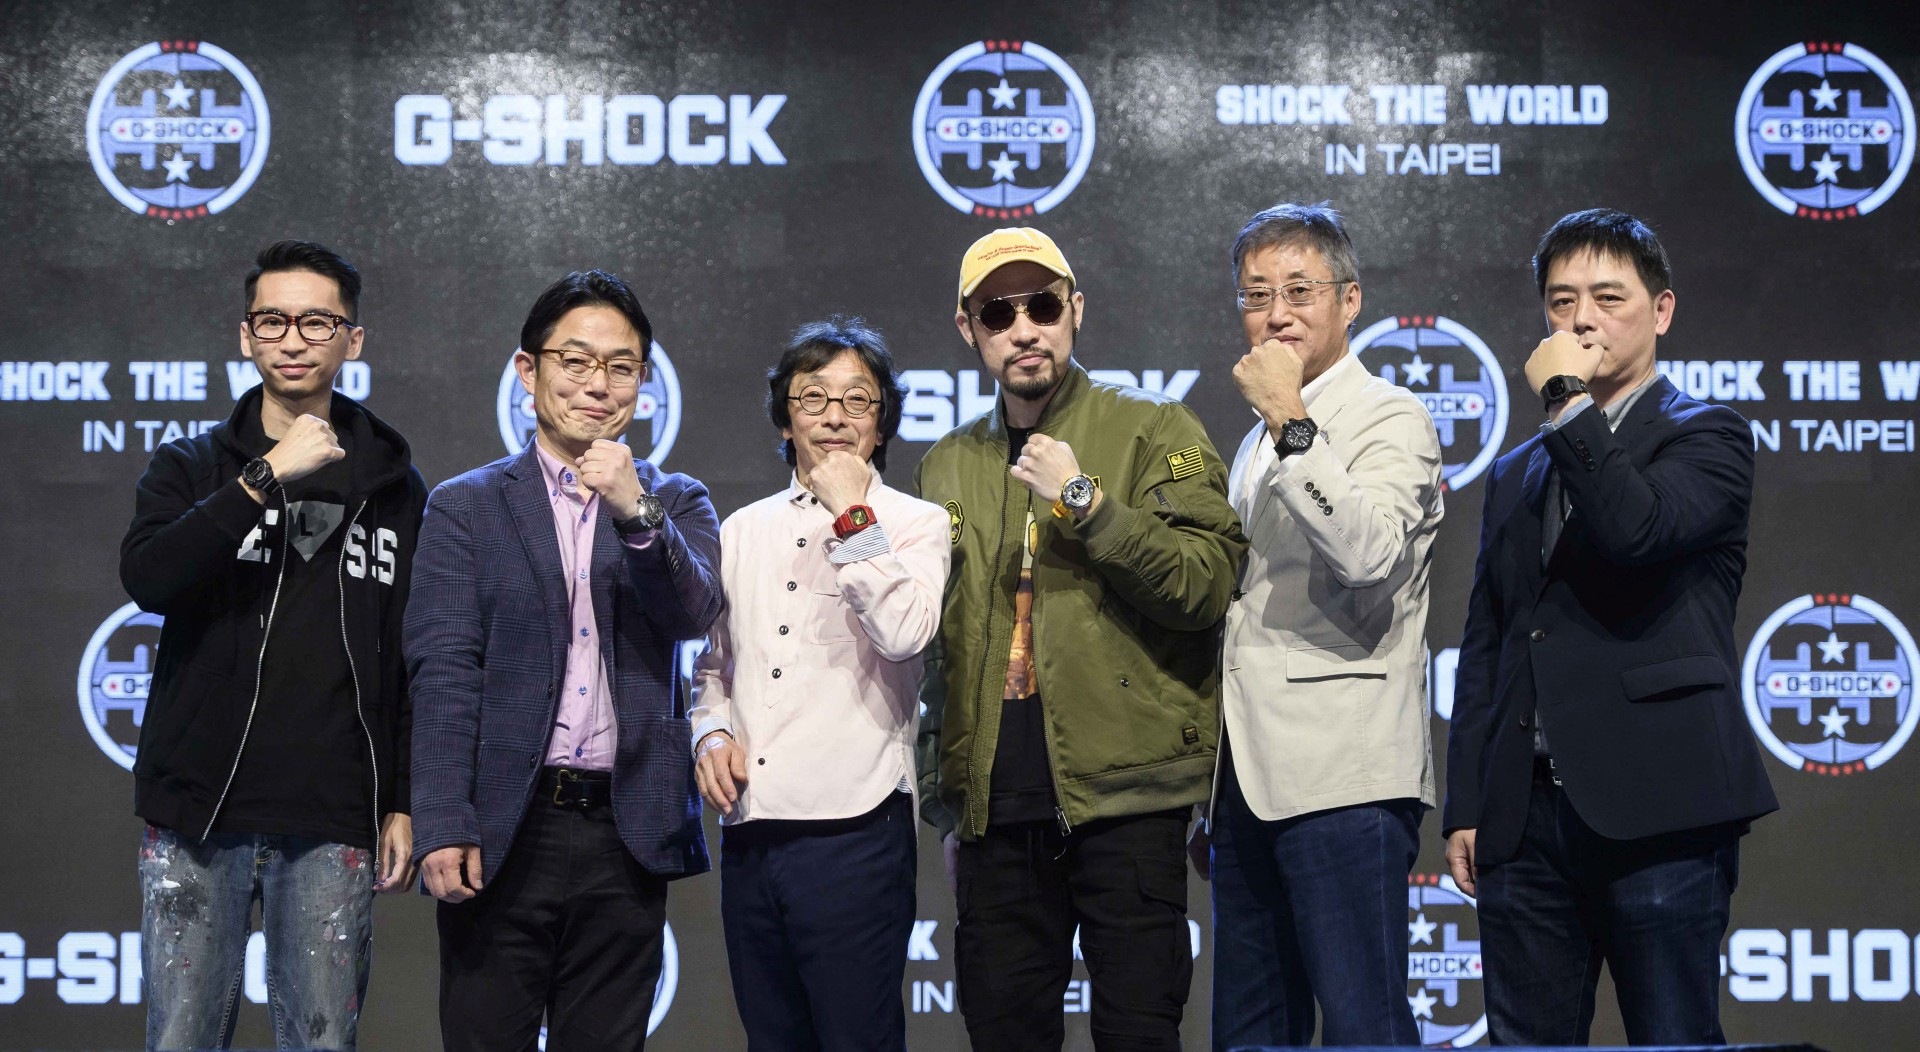 G-SHOCK三十五周年慶,SHOCK THE WORLD IN TAIPEI嗨翻全場